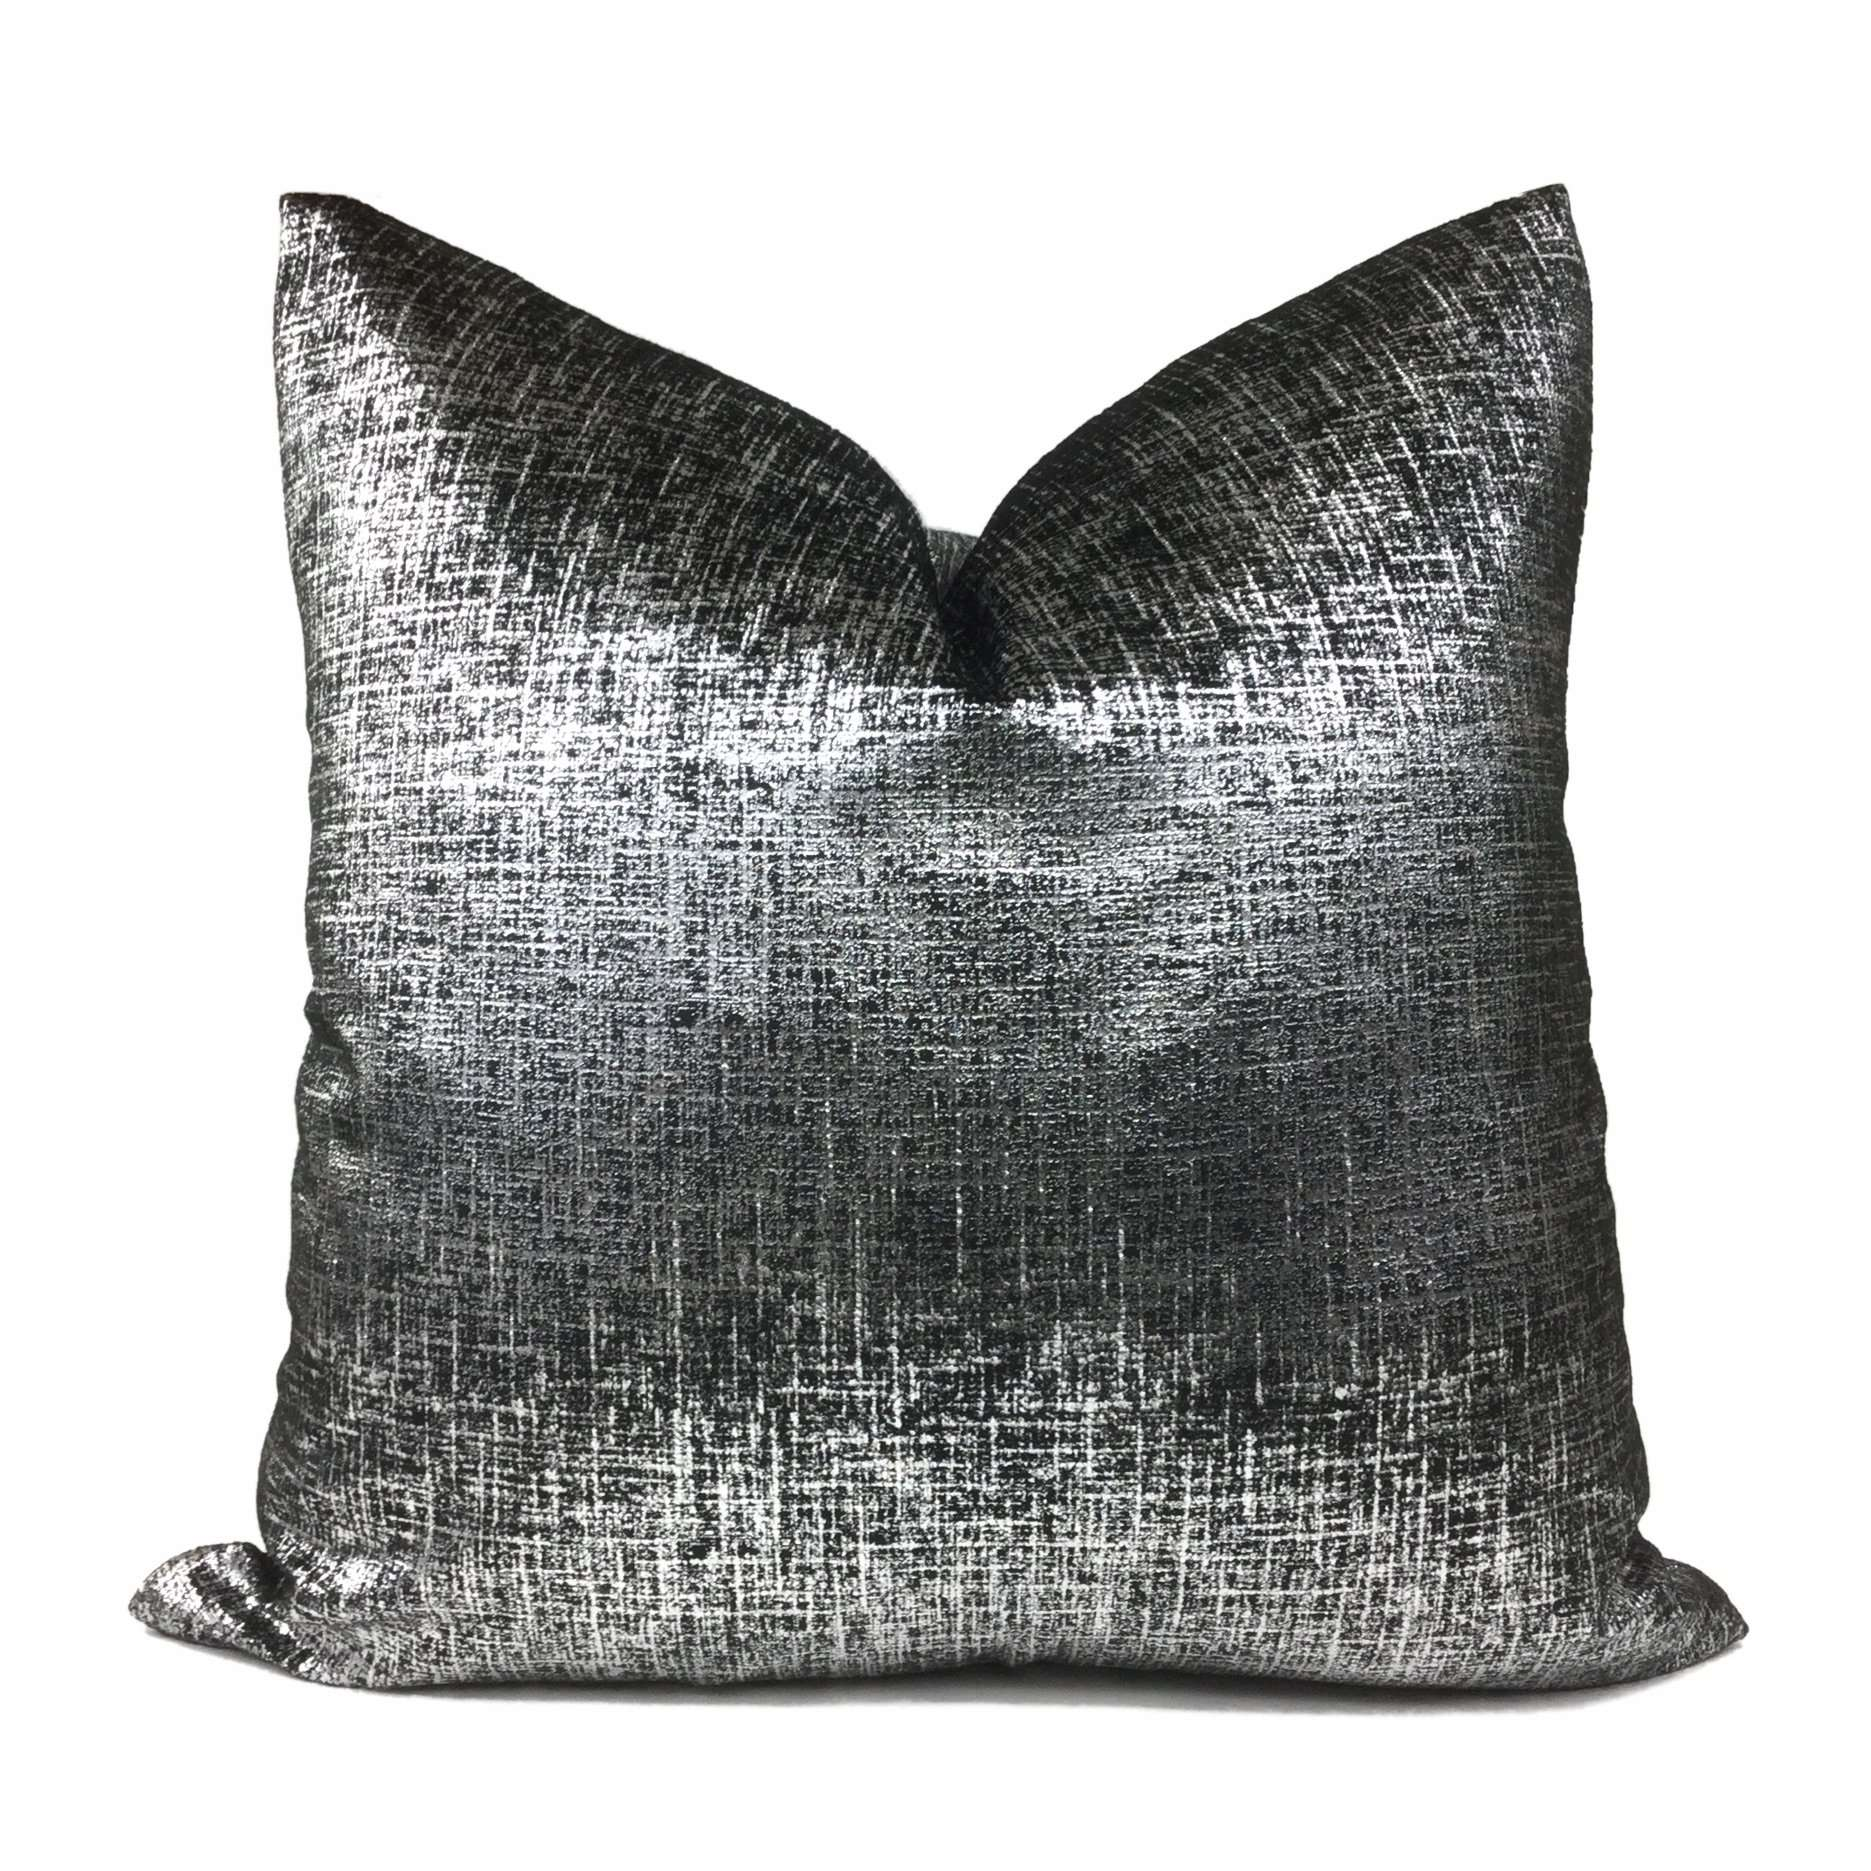 Metallic Silver Black Velveteen Pillow Cover